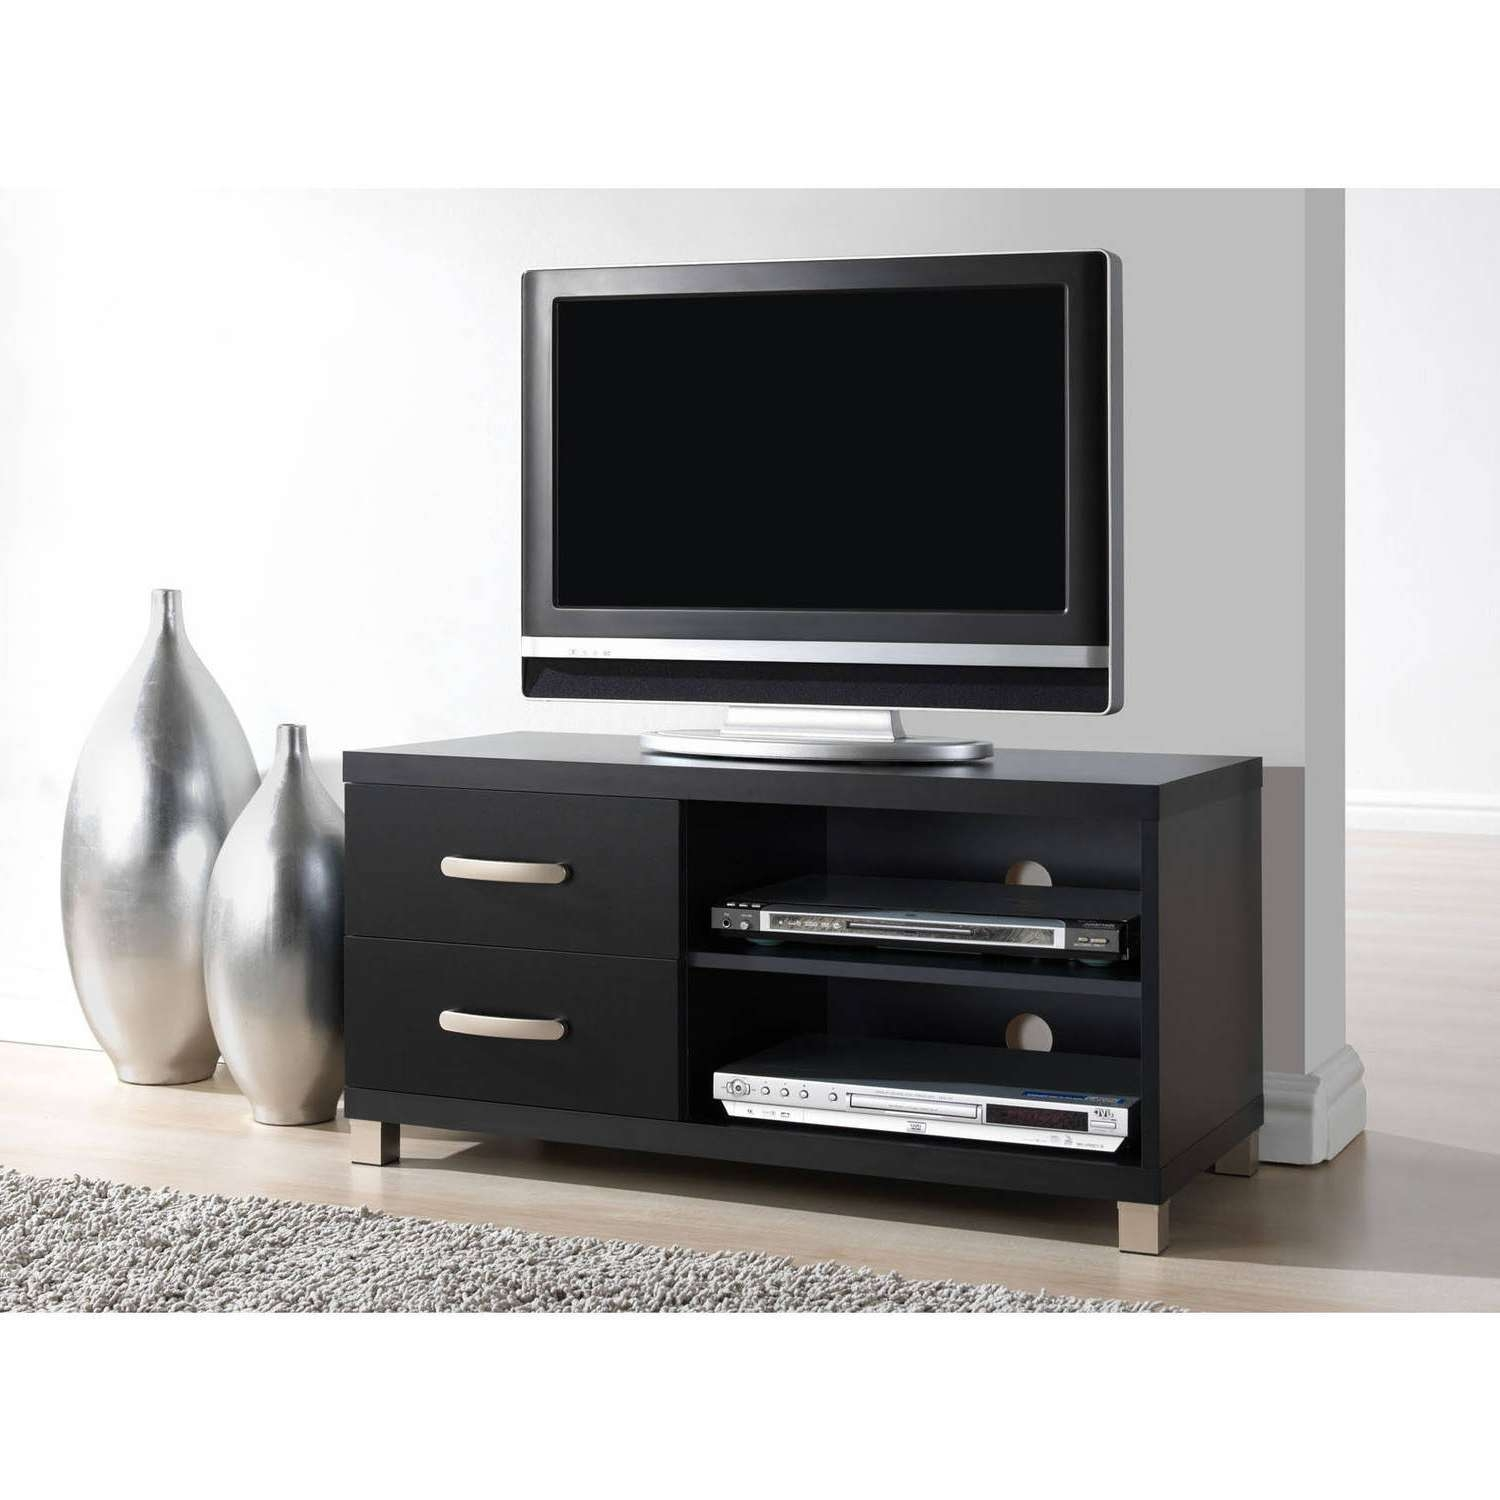 Techni Mobili 2 Drawer Tv Cabinet, Black – Walmart Throughout Tv Cabinets With Drawers (View 13 of 20)